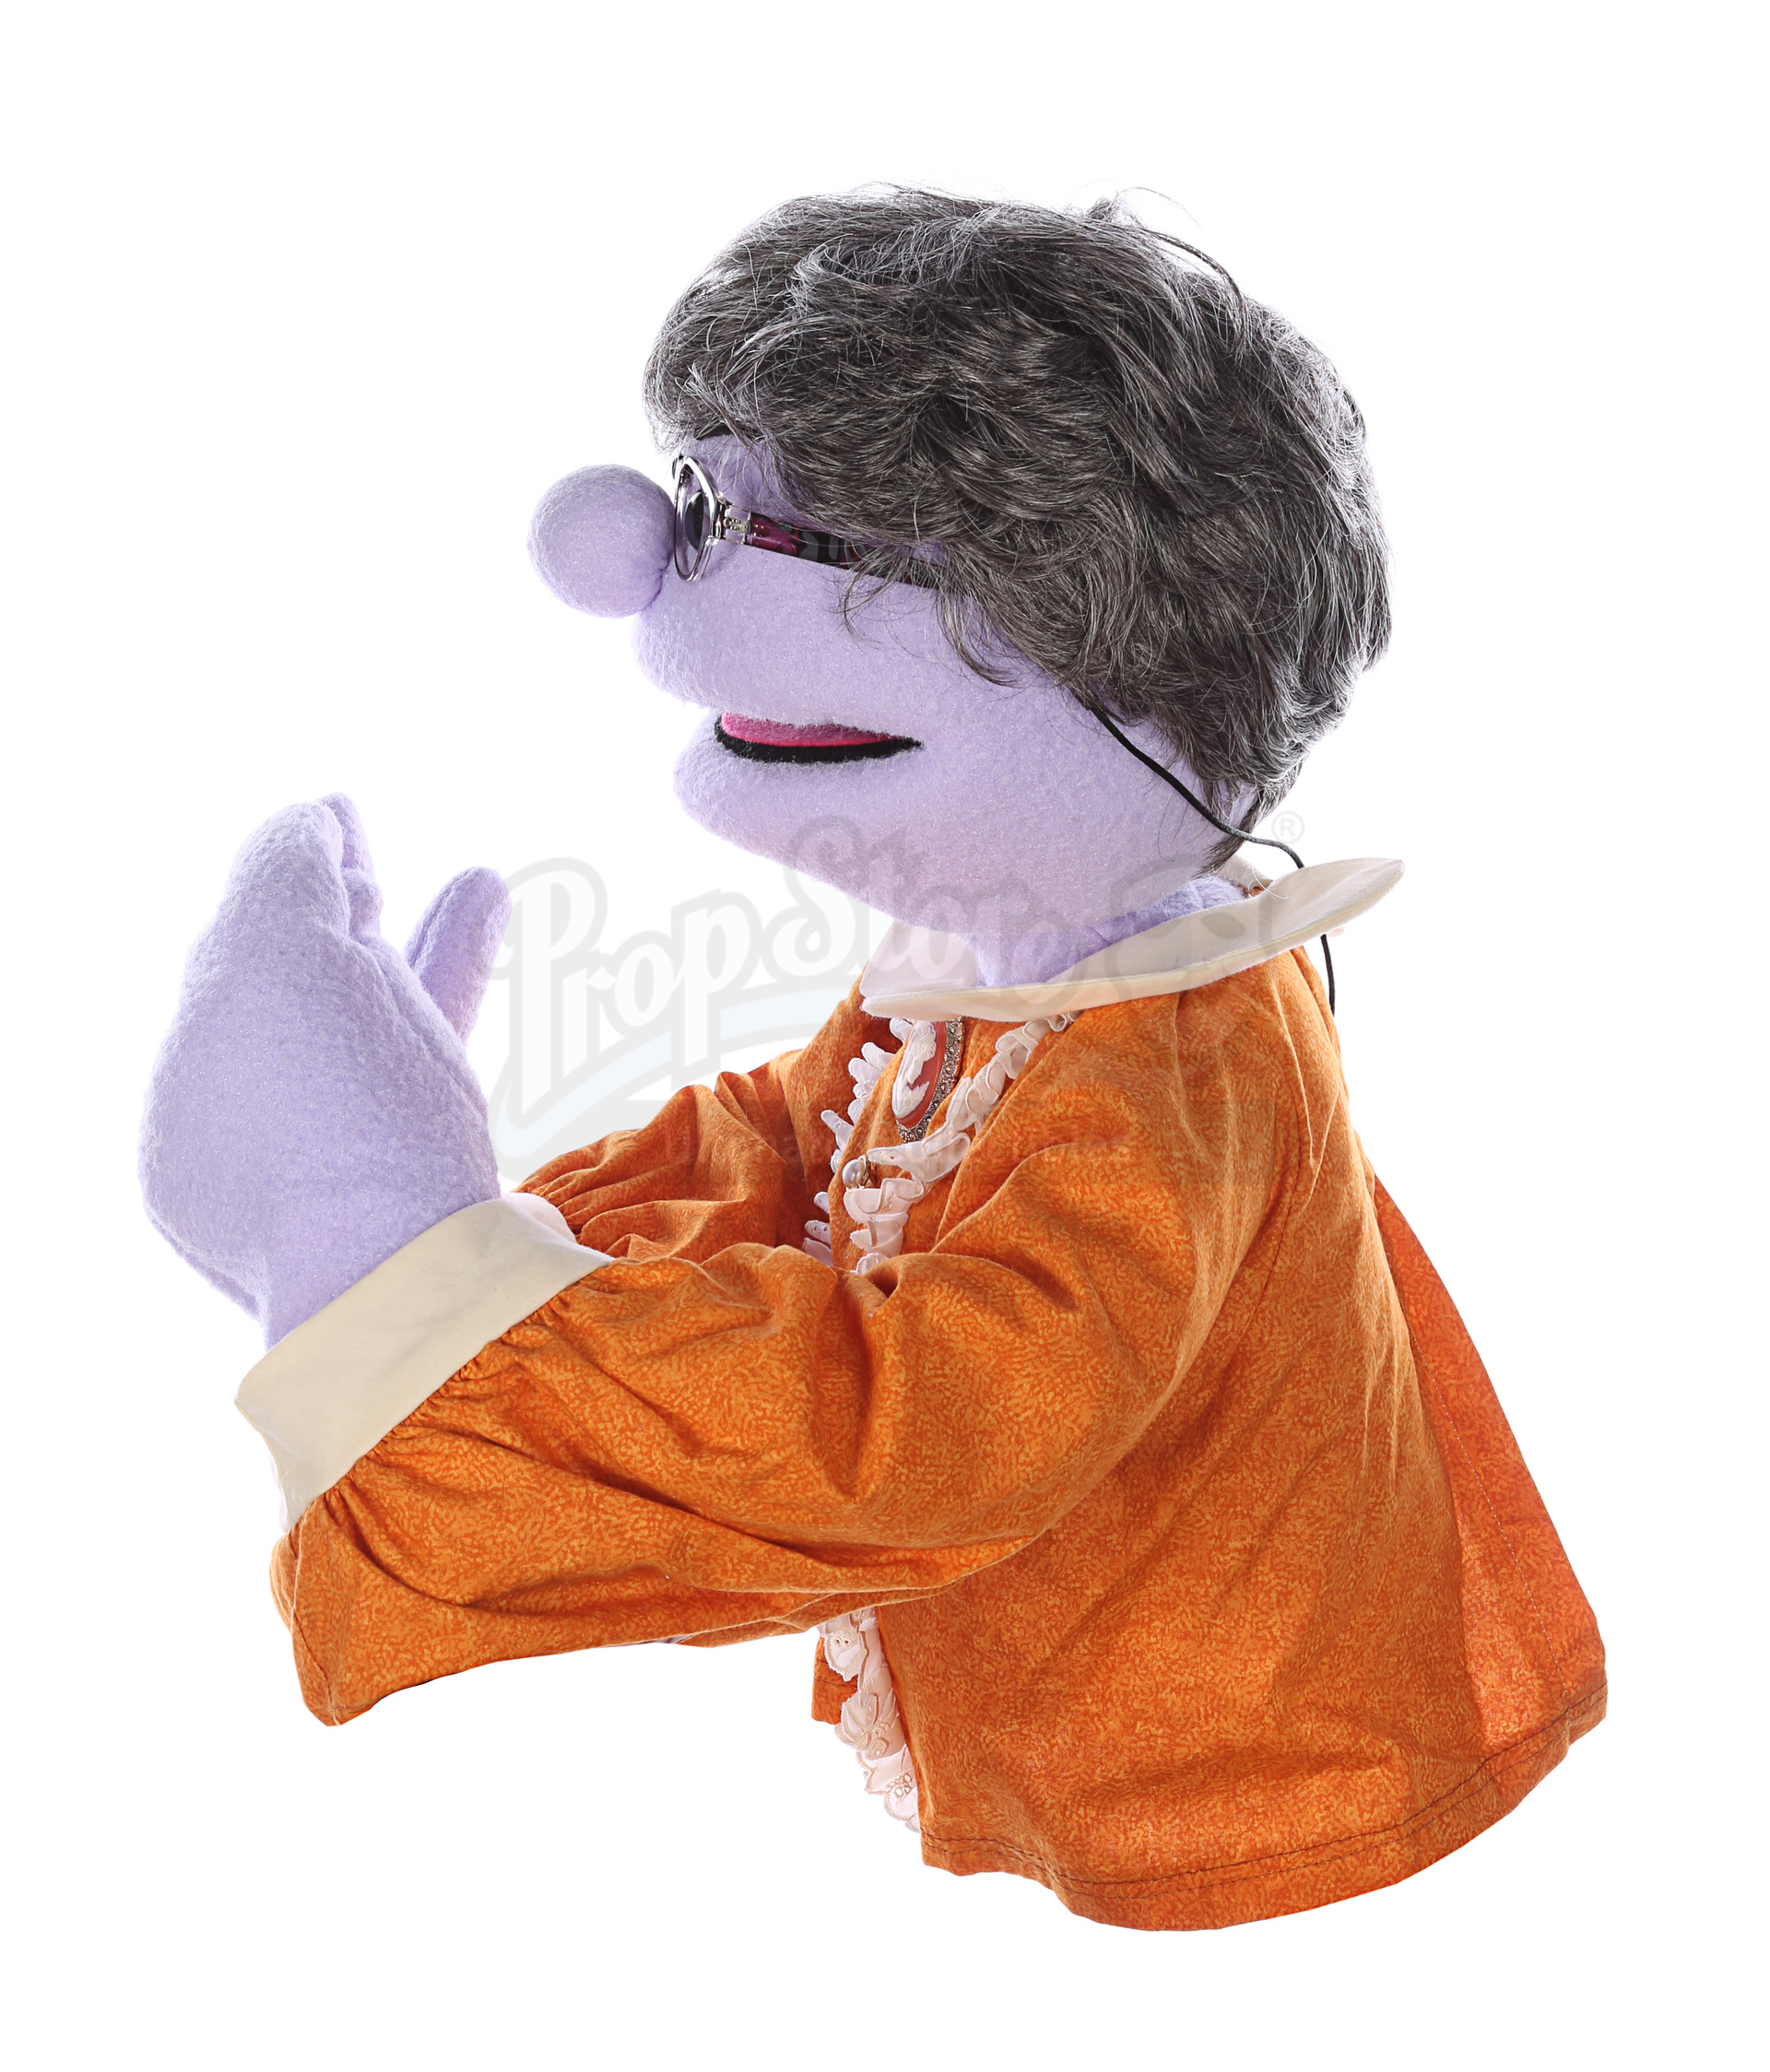 AVENUE Q (STAGE SHOW) - Cameo Puppet Collection: Mrs T, Ricky and Newcomer - Image 4 of 13